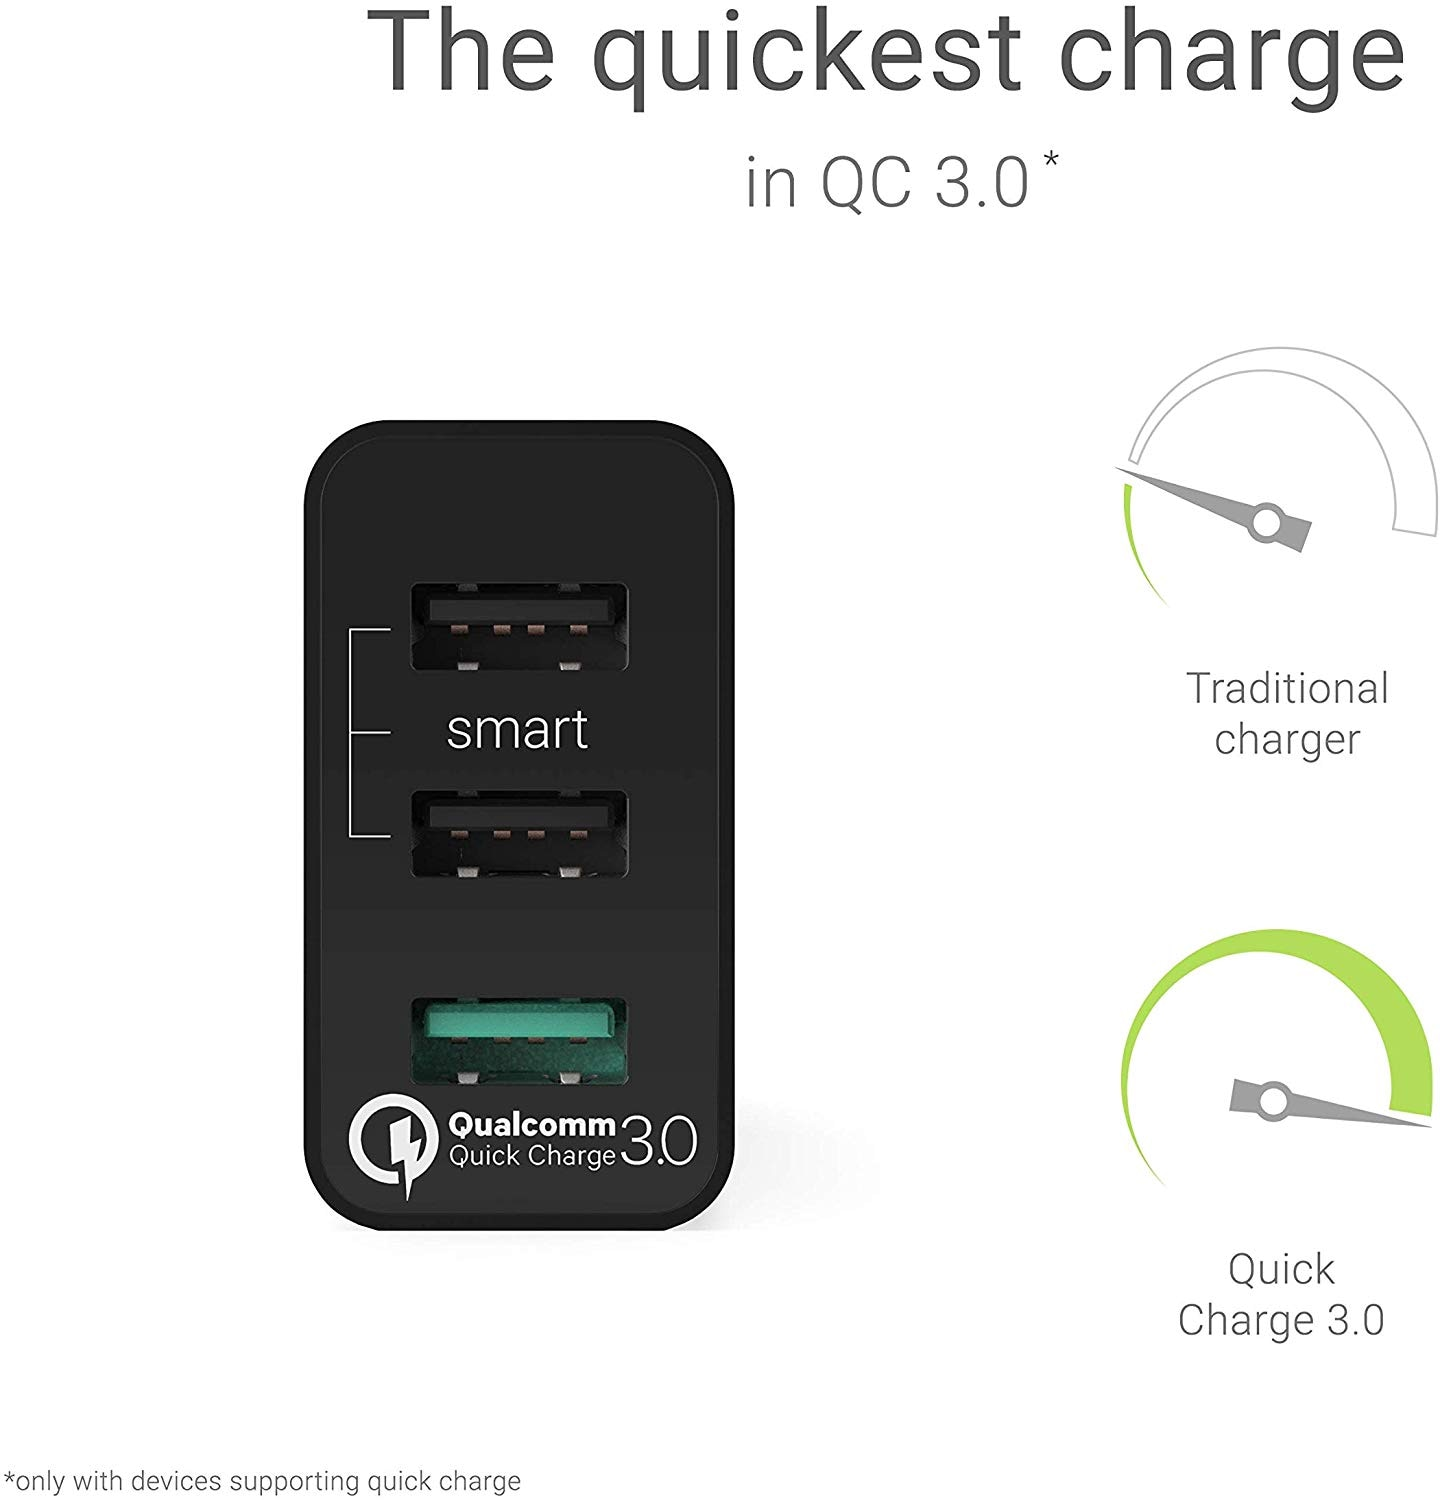 GC® Universal Charger 30W 3-Port USB with QC Quick Charge 3.0 for iPhone iPad Samsung Honor HTC Huawei LG Sony - 2